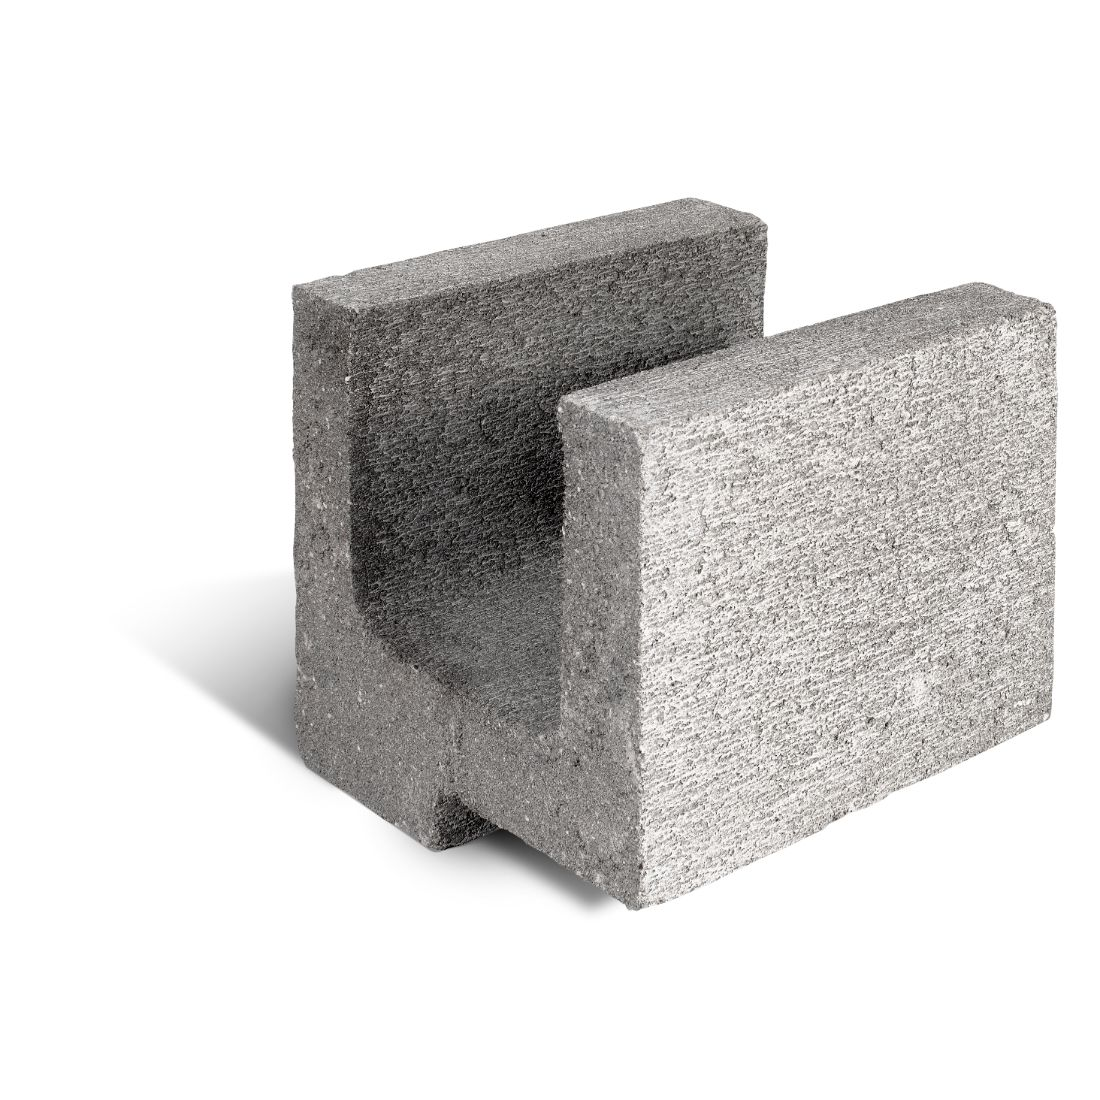 20.11R Rebate Lintel Block 190 x 190 x 190mm